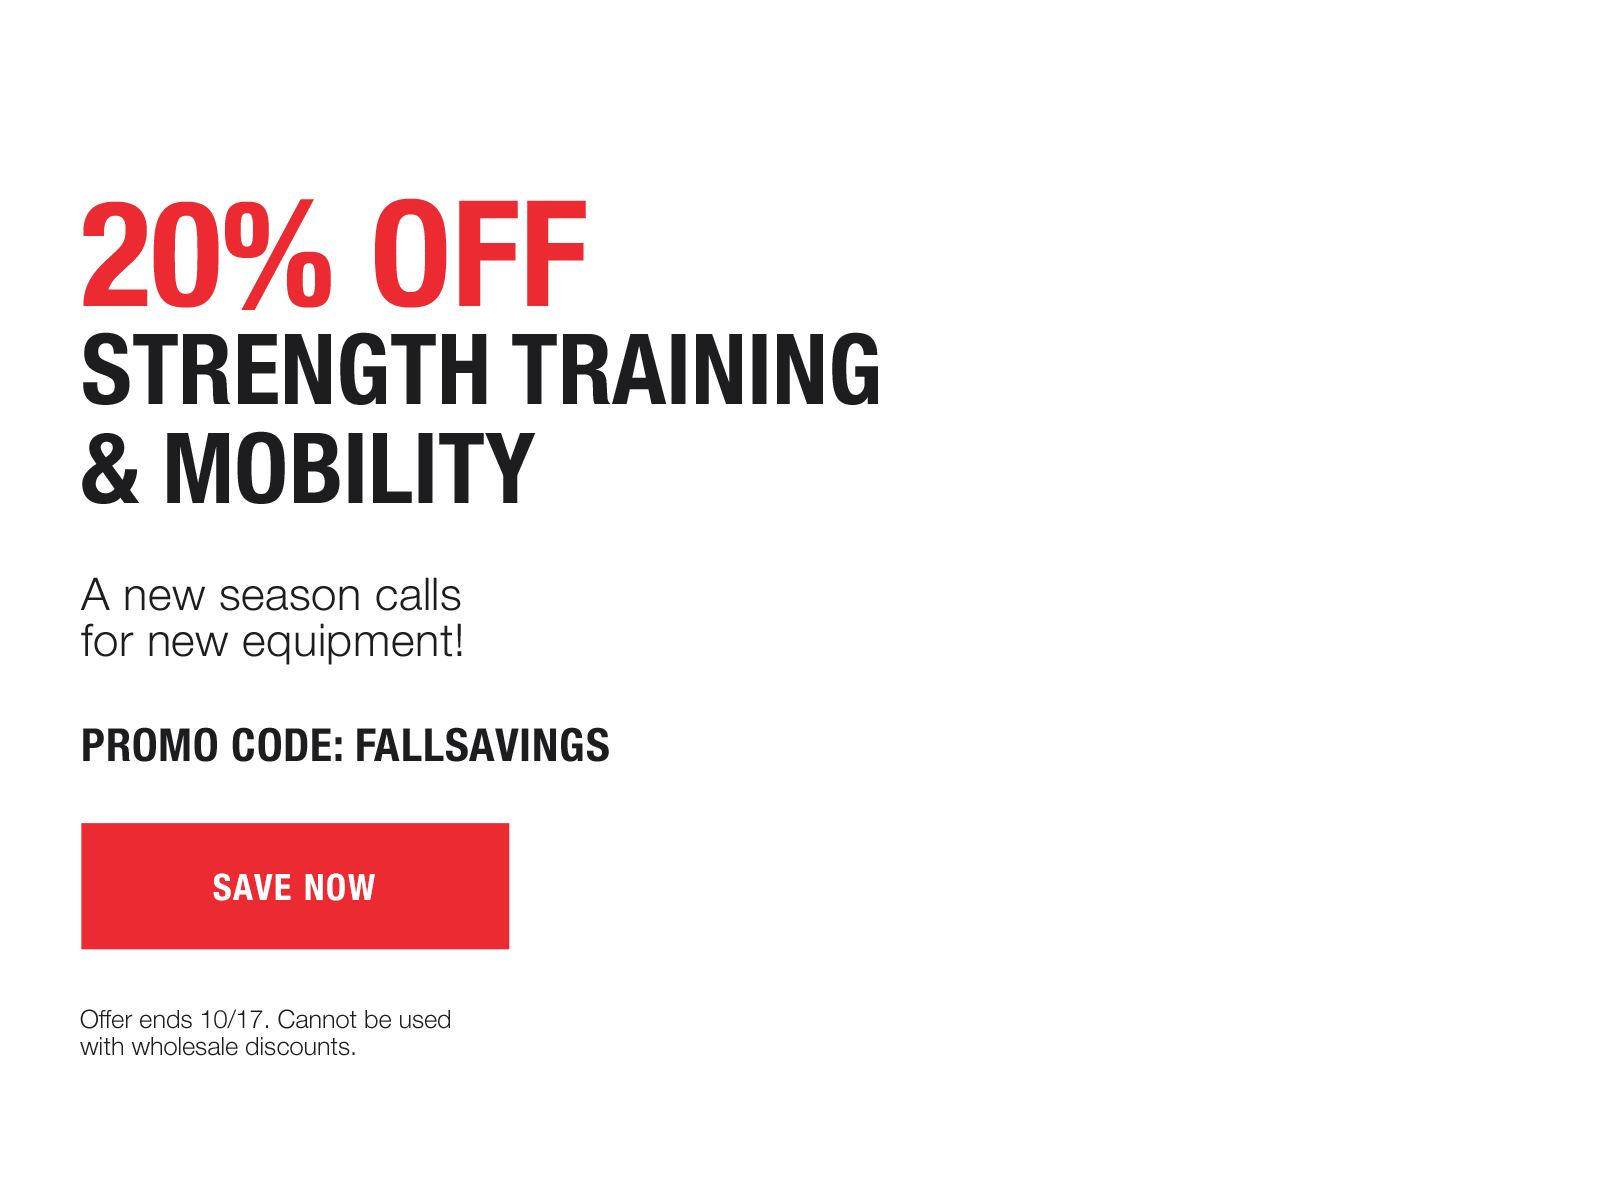 20% off mobility and strength training with code FALLSAVINGS